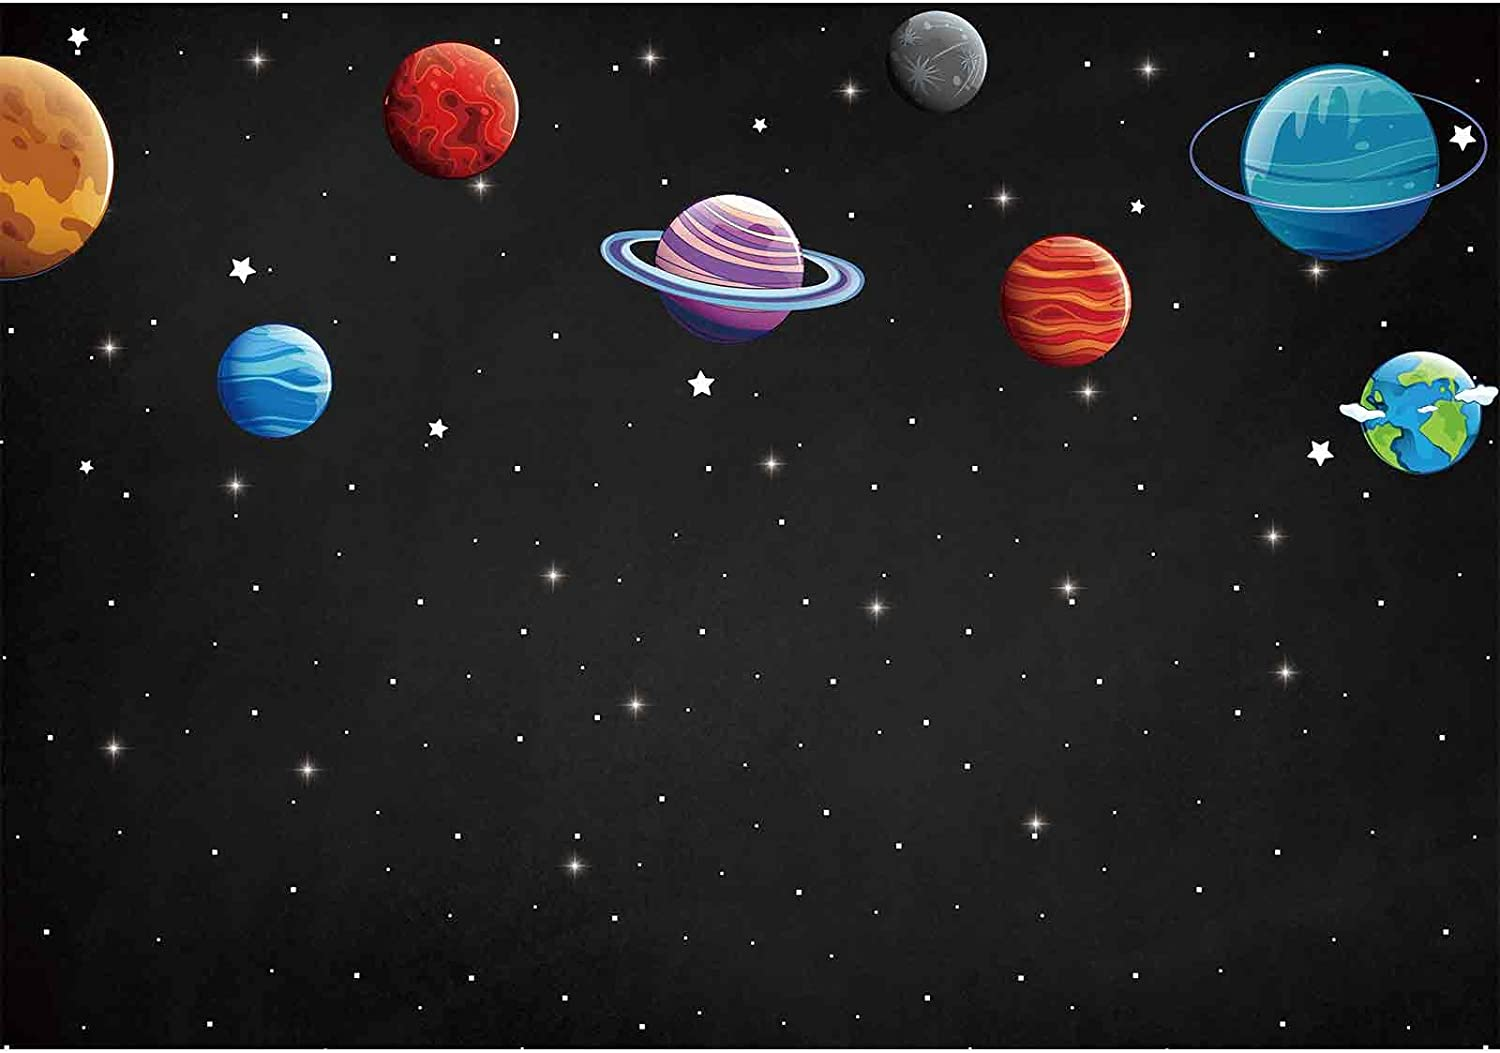 Sensfun 8x8ft Solar System Backdrop Astronomy Education Science Universe Galaxy Space Planets Orbiting The Sun Photo Booth Background Vinyl Studio Photography Props